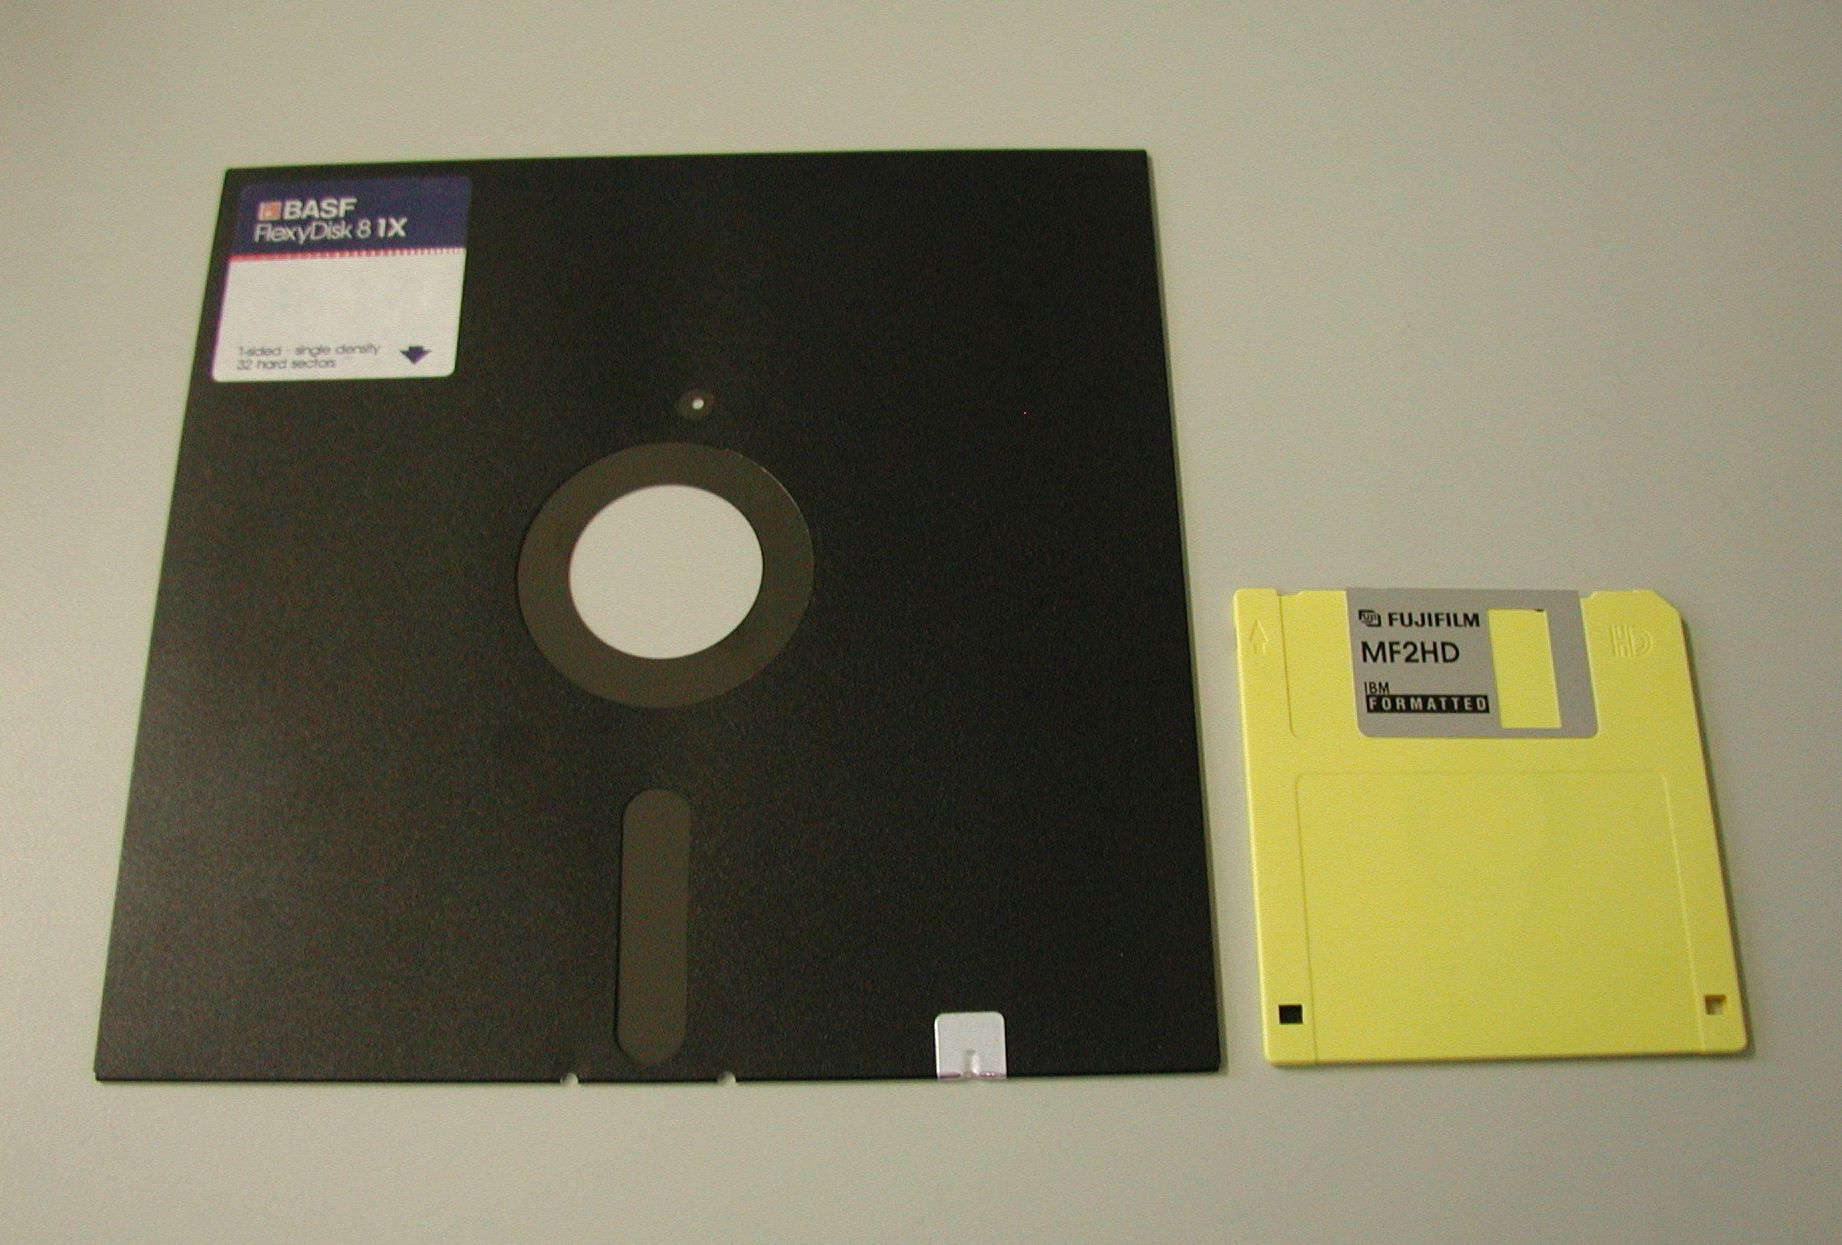 "8"" vs. 3.5"" floppies"